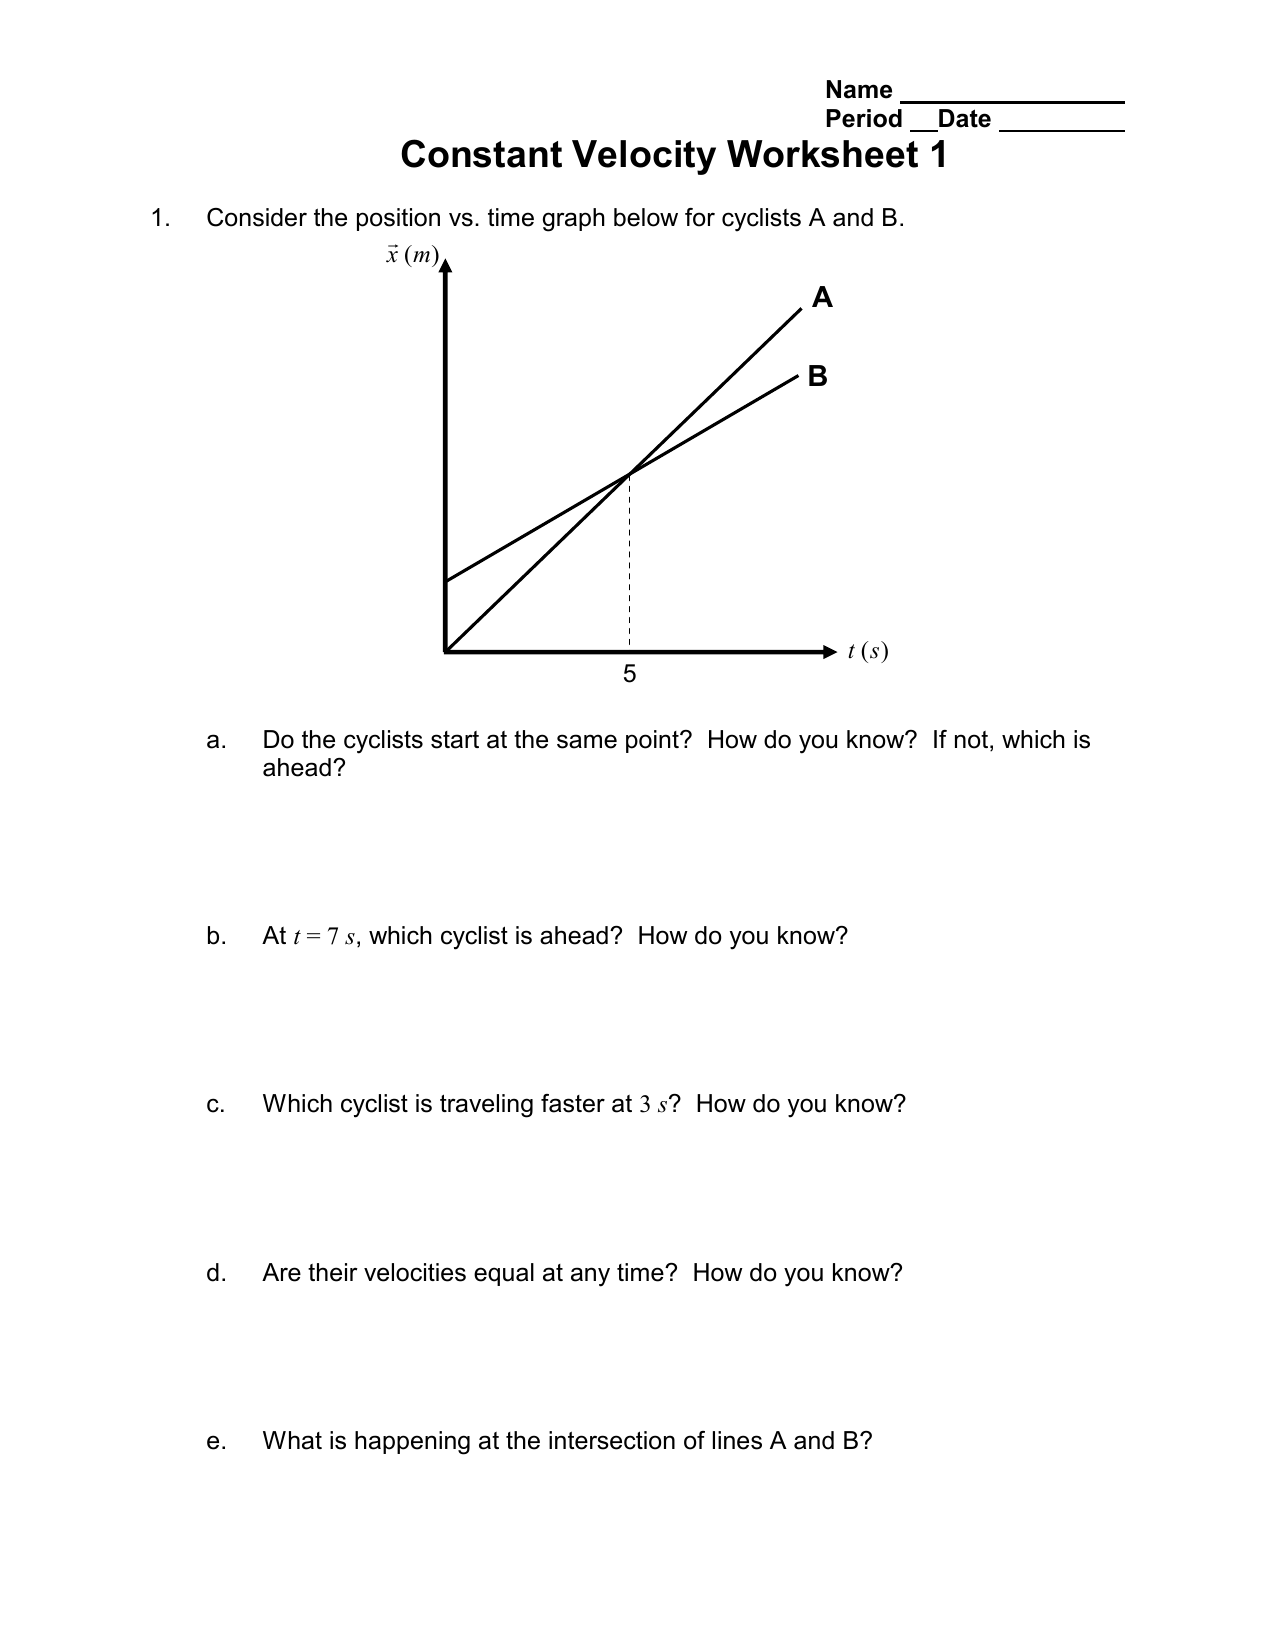 Constant Velocity Worksheet 1 A B